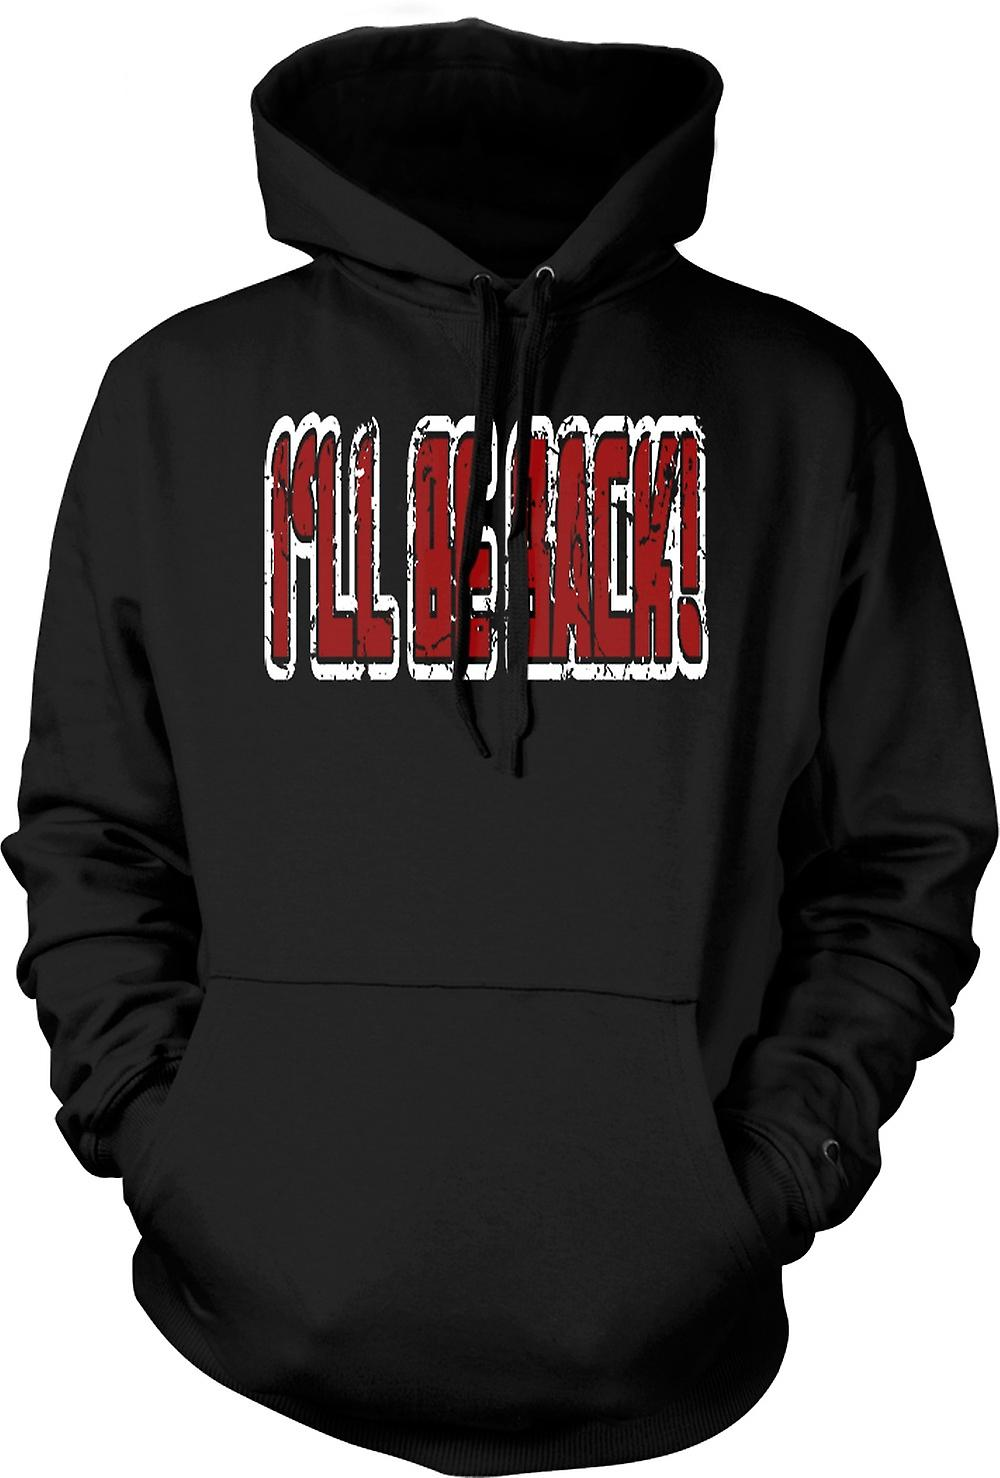 Mens Hoodie - Terminator I'll Be Back - Funny